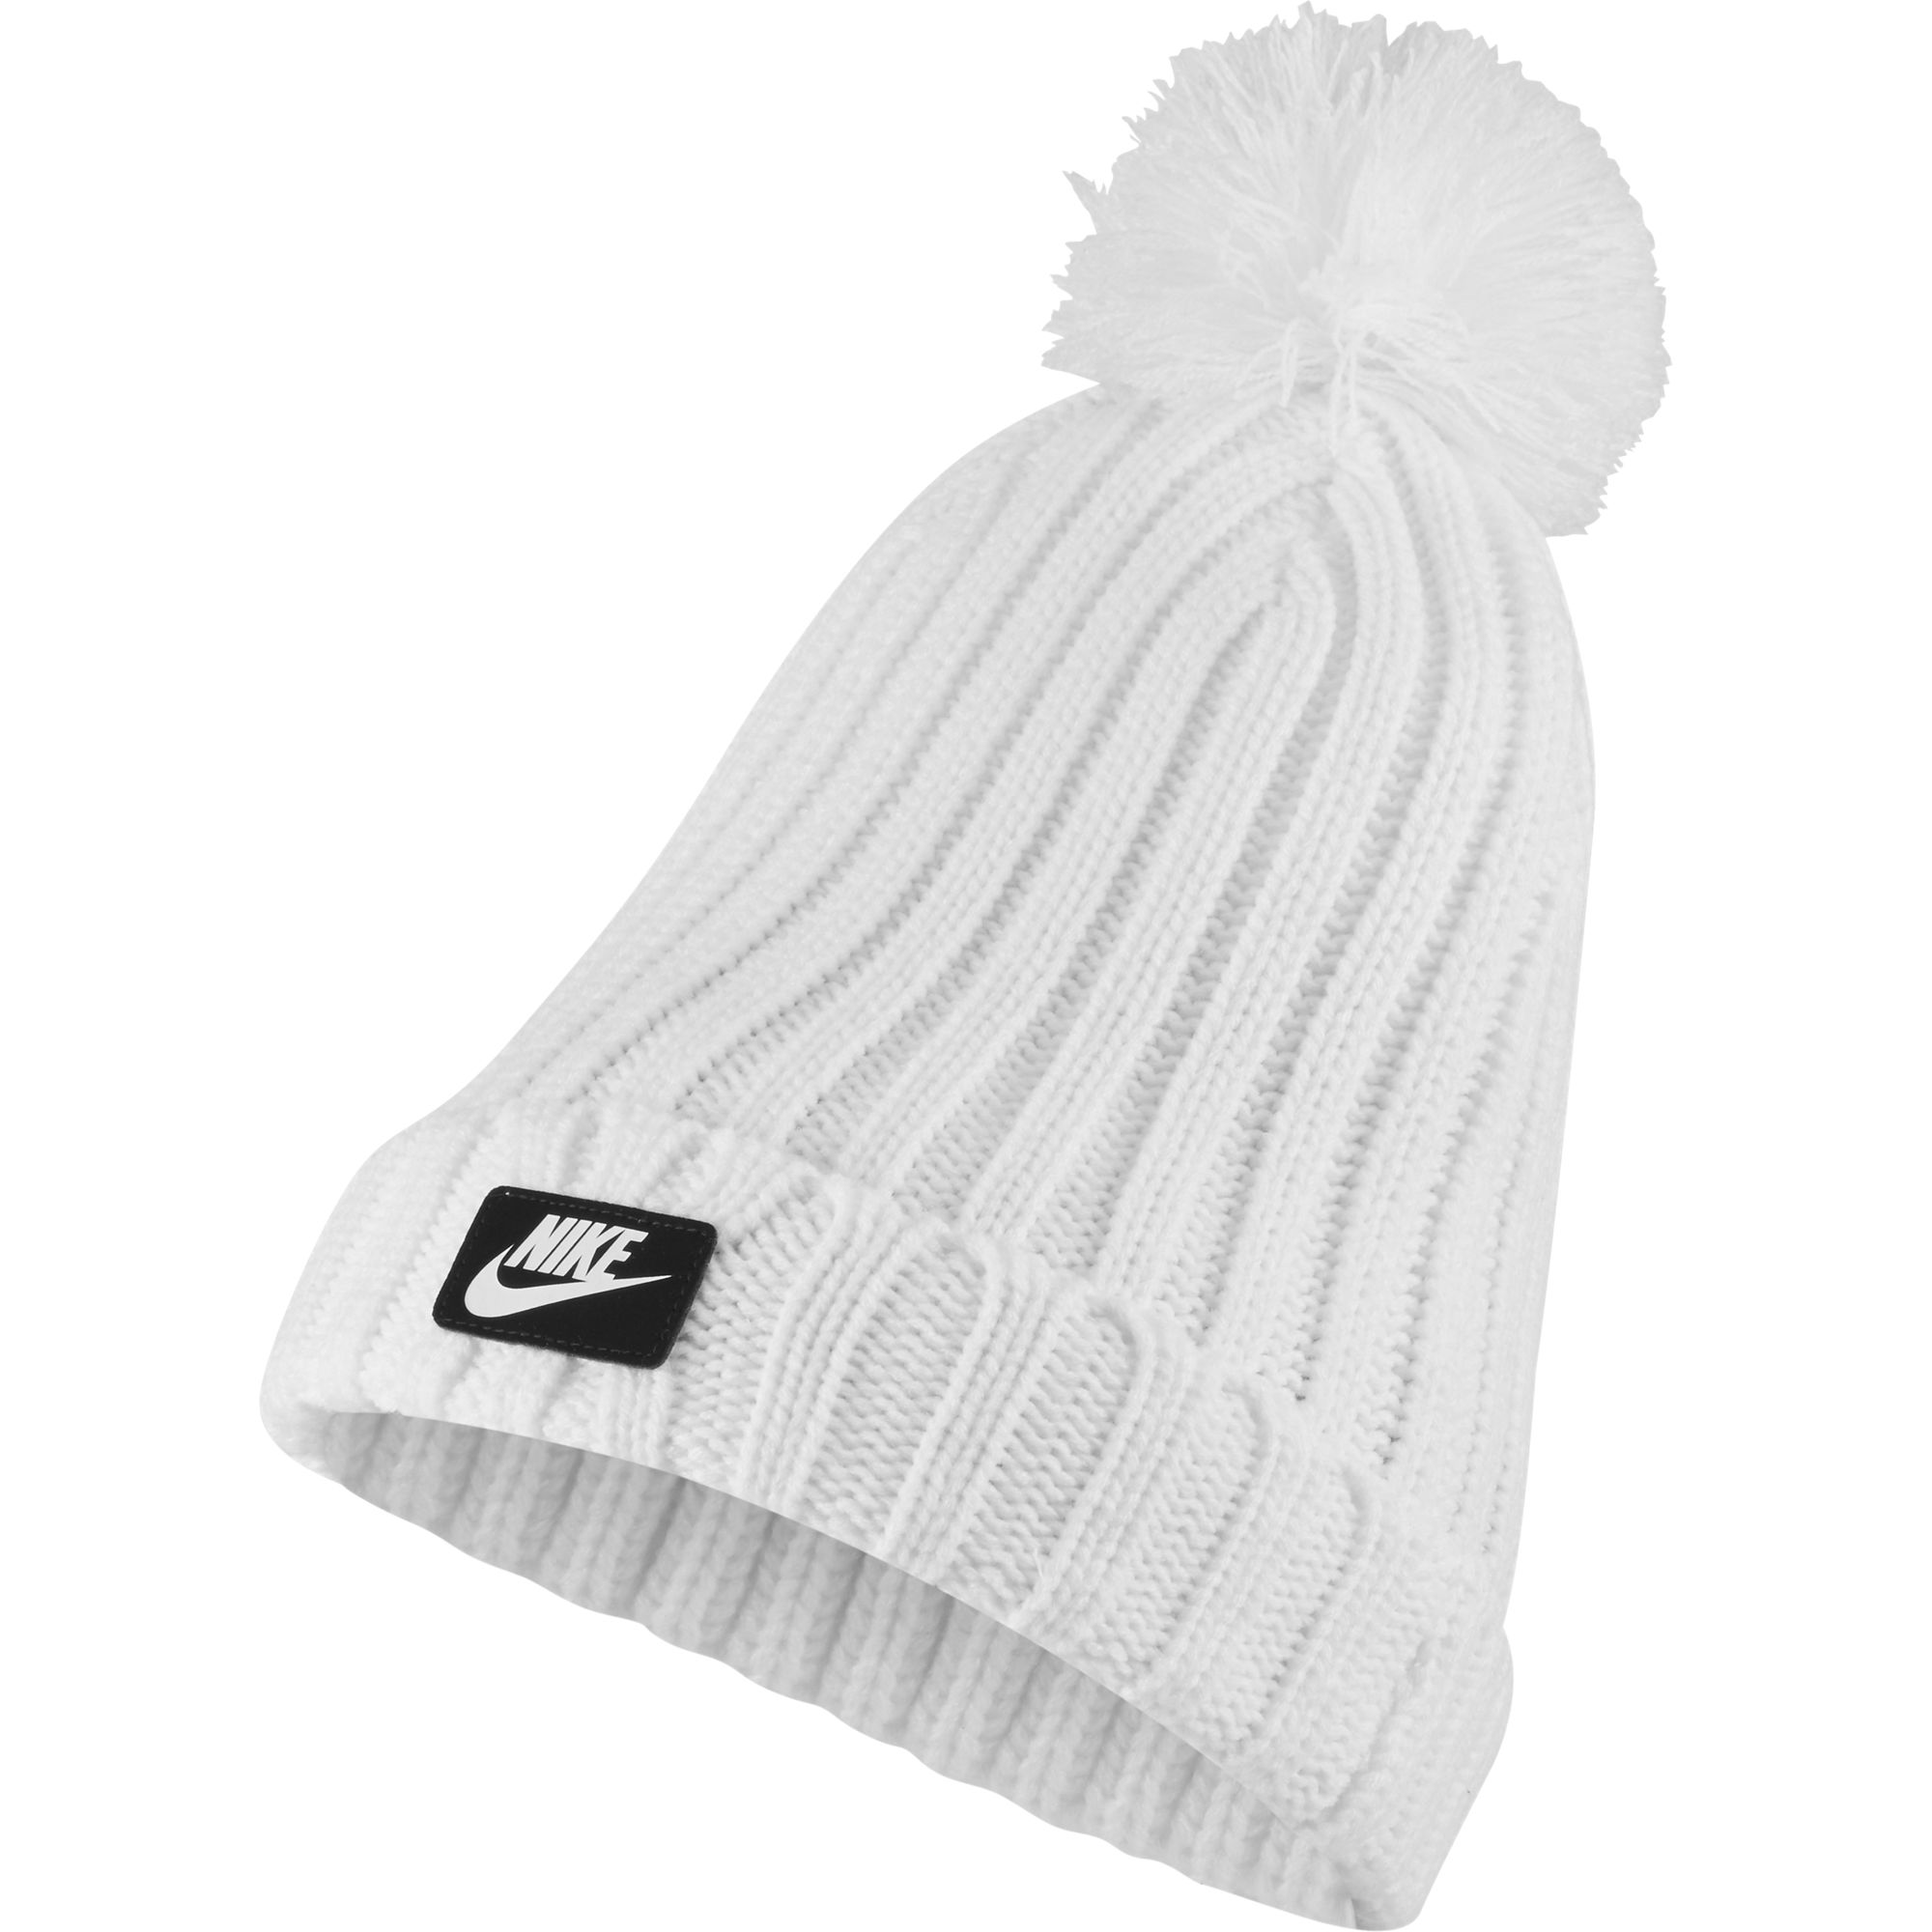 Women's Cuffed Pom Beanie, White, swatch